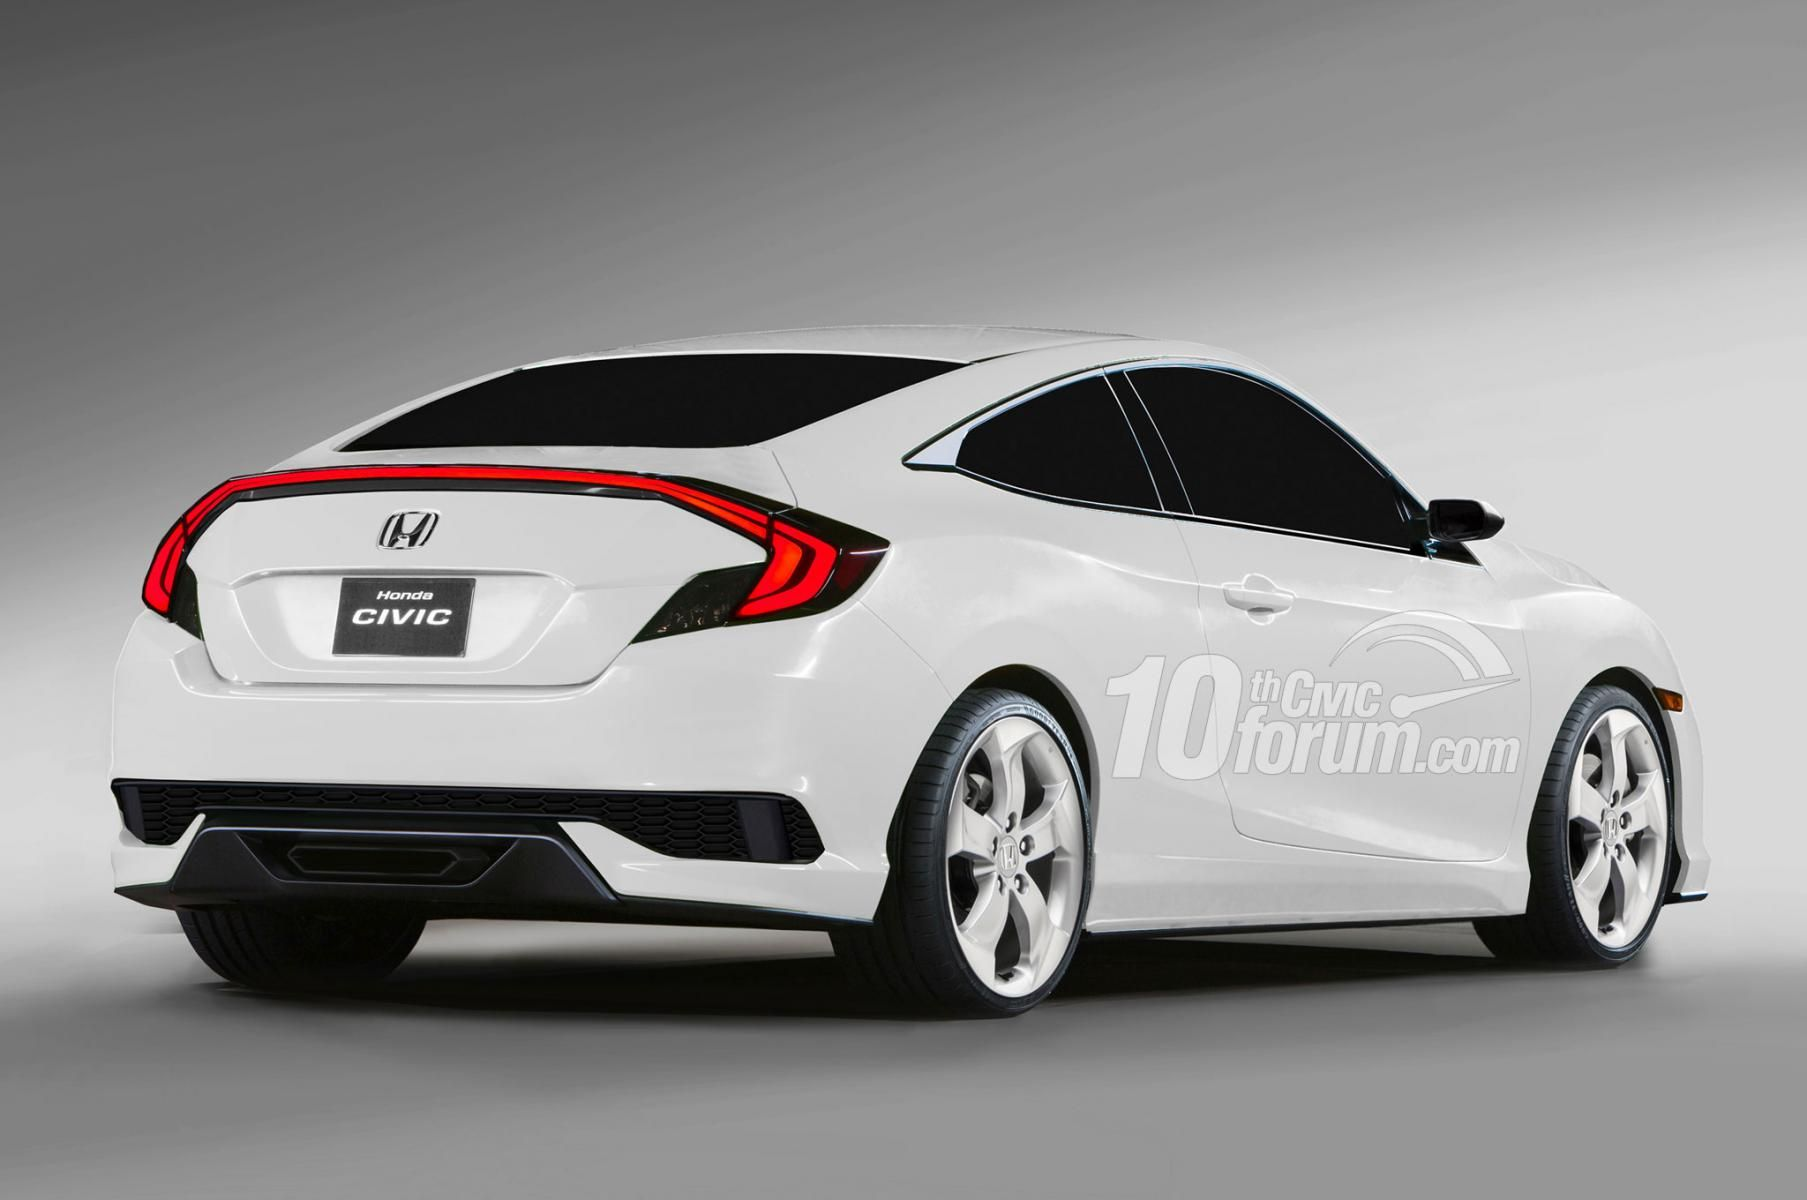 Rear view. Honda Civic Hatchback. 2016 Honda civic coupe